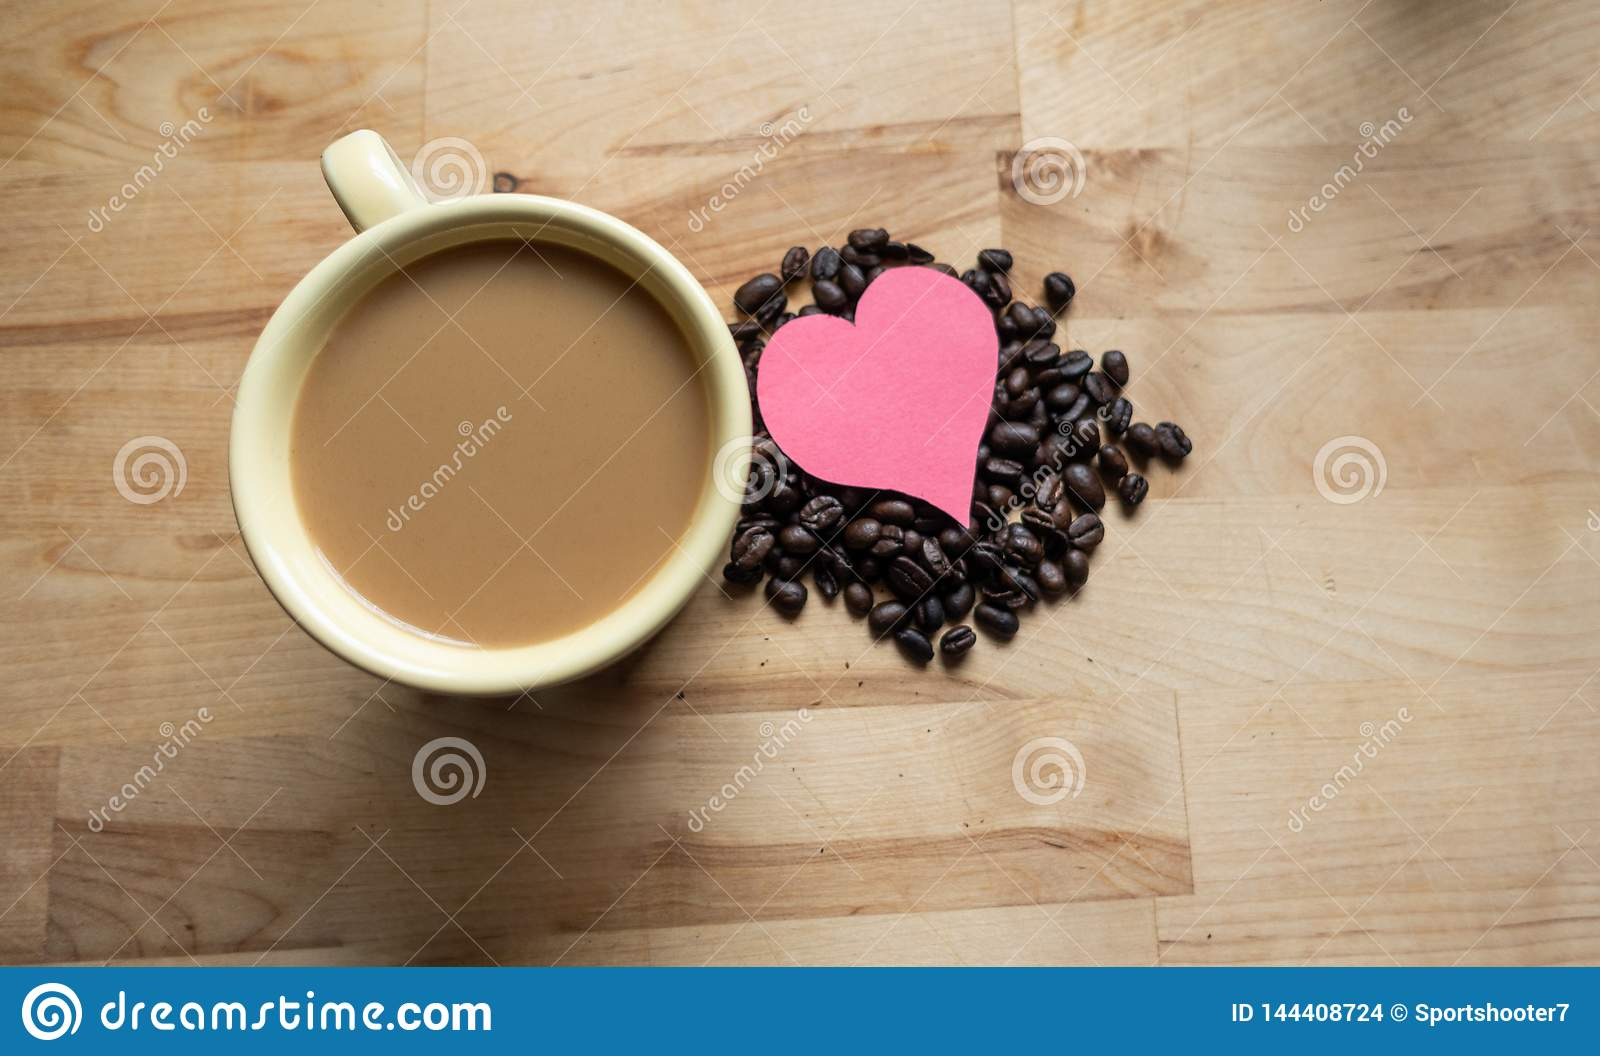 Hearts and coffee together